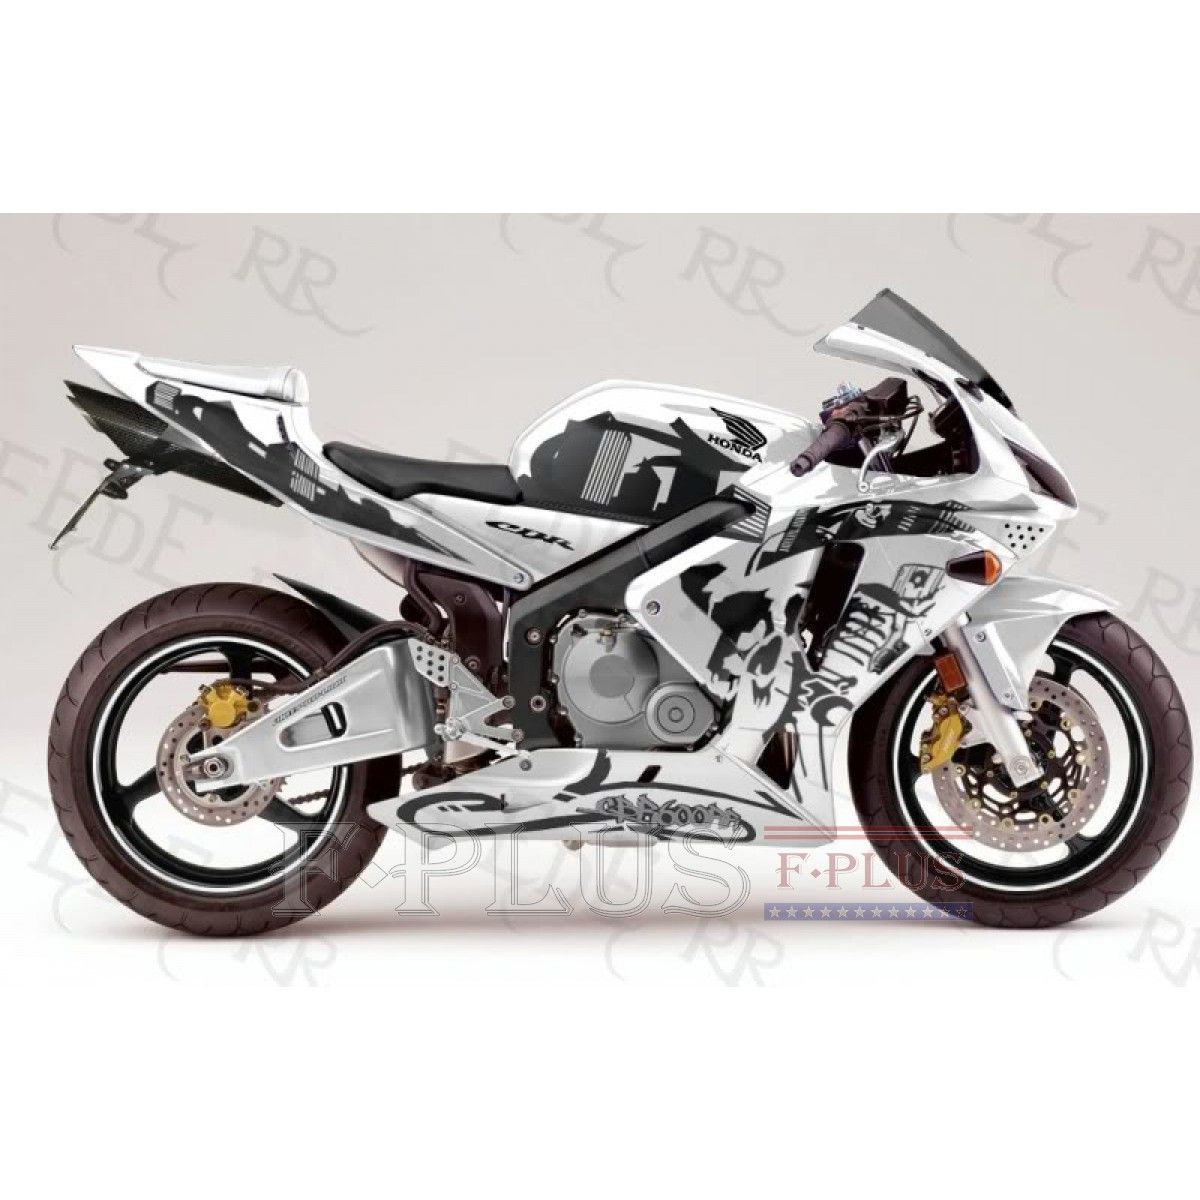 Cbr 600 graffiti for sale